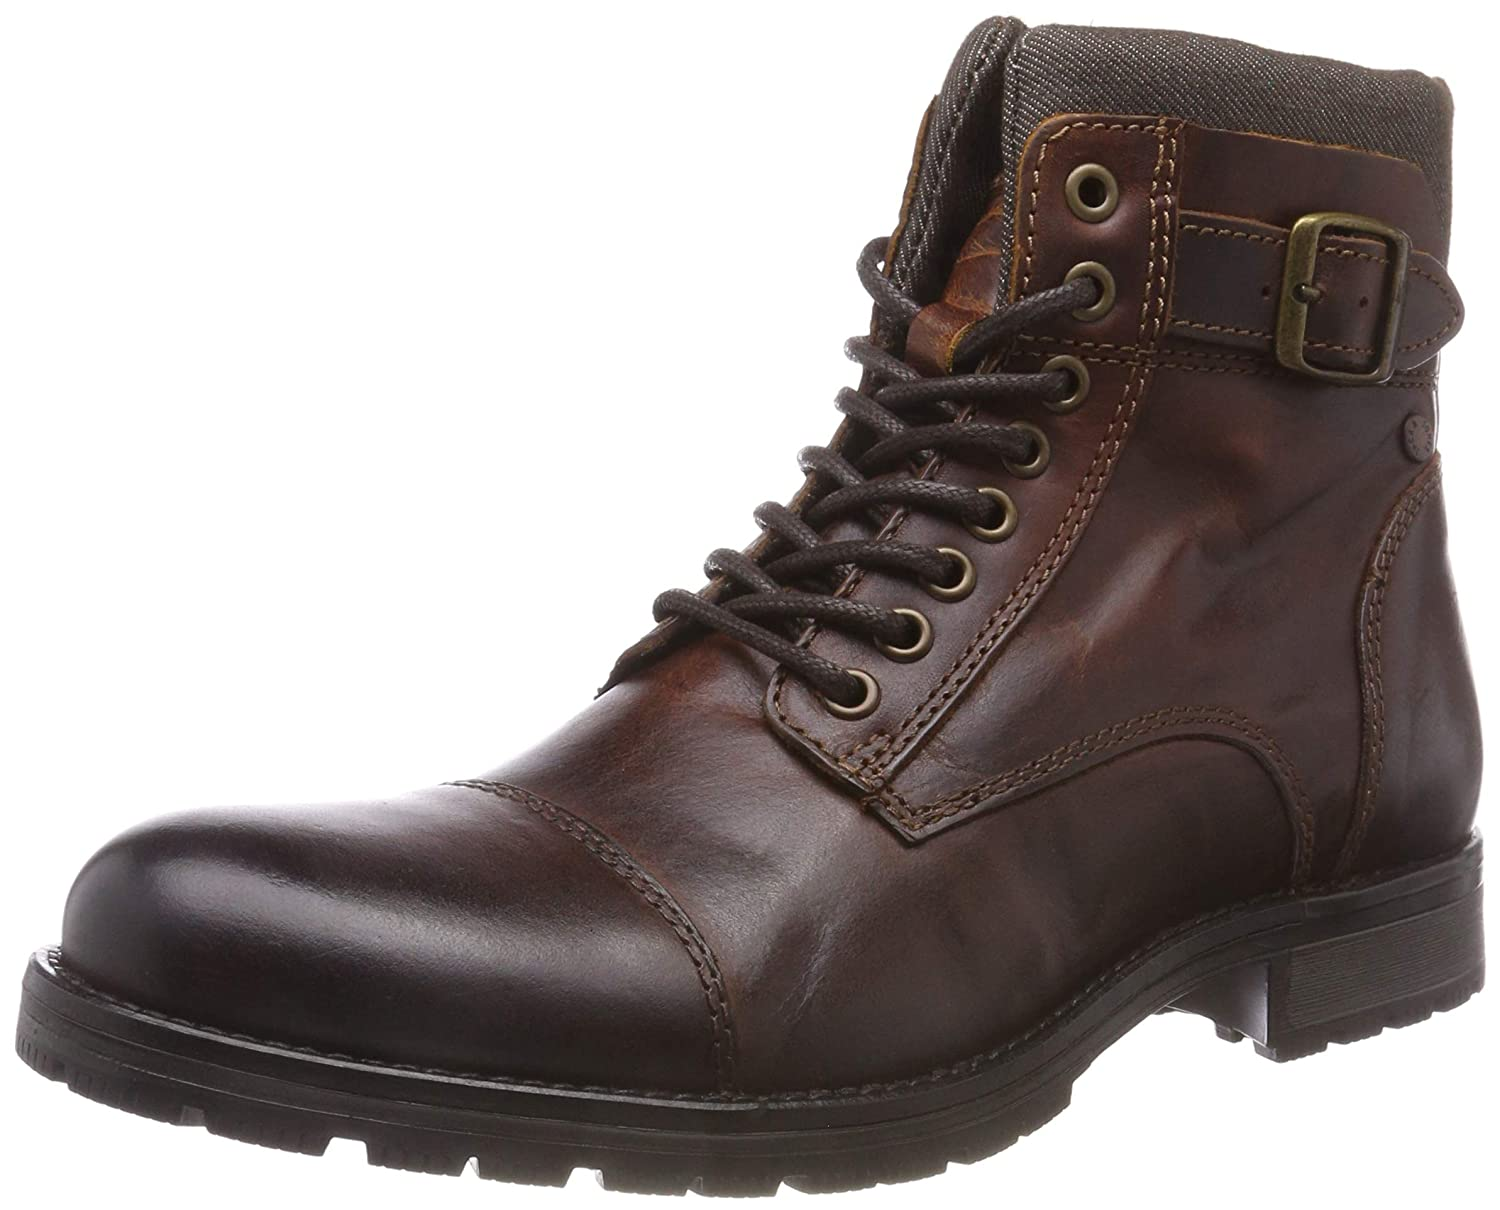 TALLA 42 EU. Jack & Jones Jfwalbany Leather Brown Stone STS, Botas Estilo Motero para Hombre